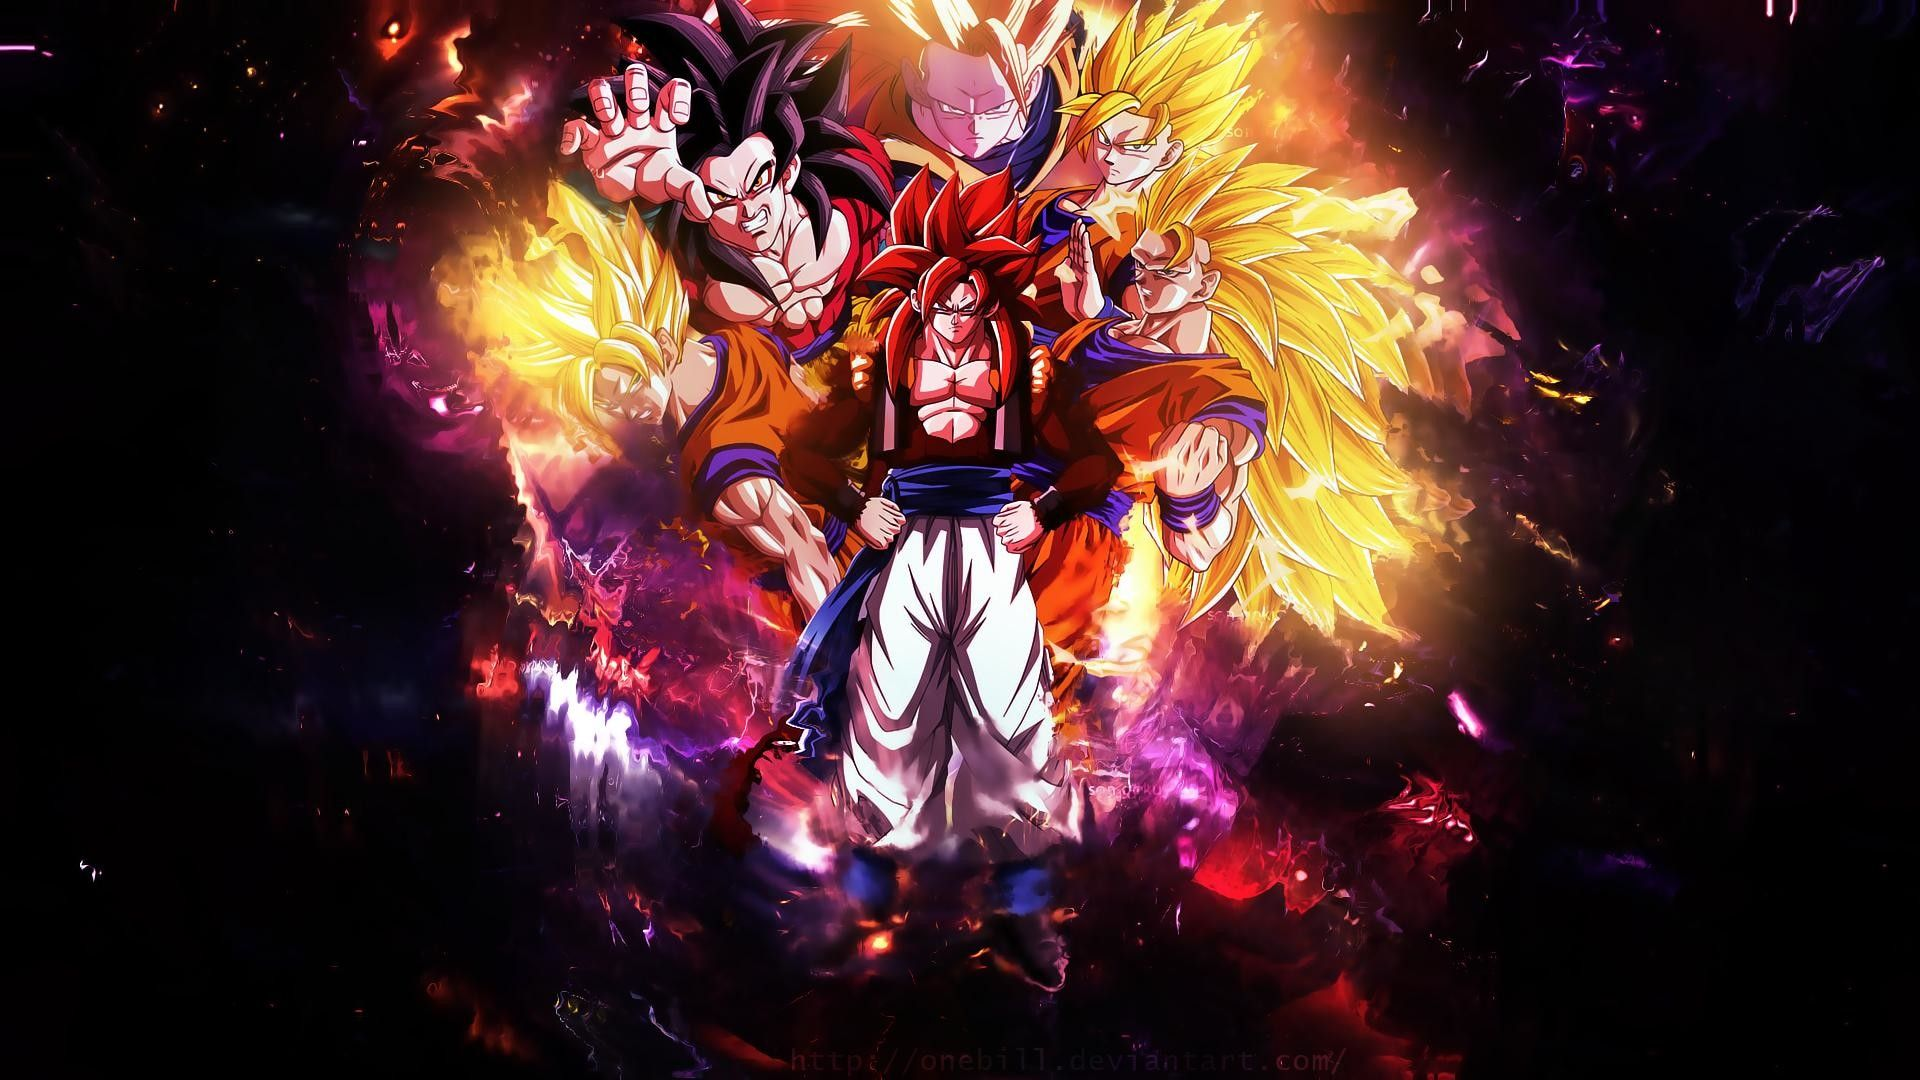 Awesome Goku Wallpapers Top Free Awesome Goku Backgrounds Wallpaperaccess